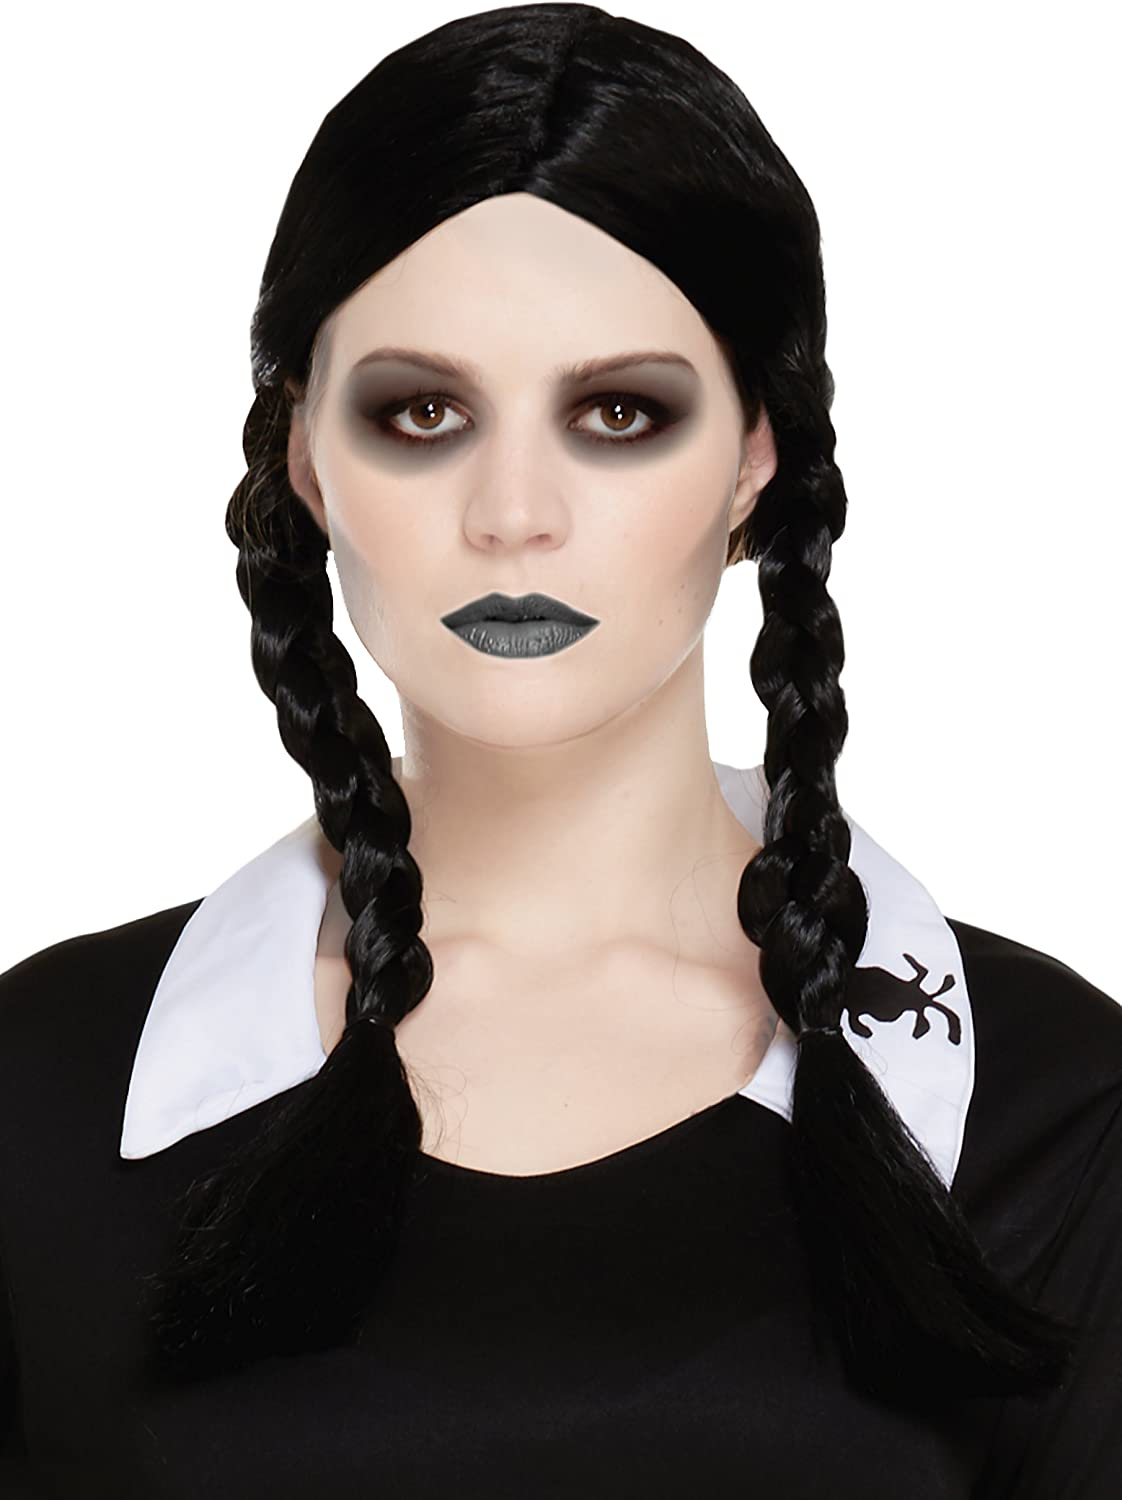 HENBRANDT Scary Daughter Wig